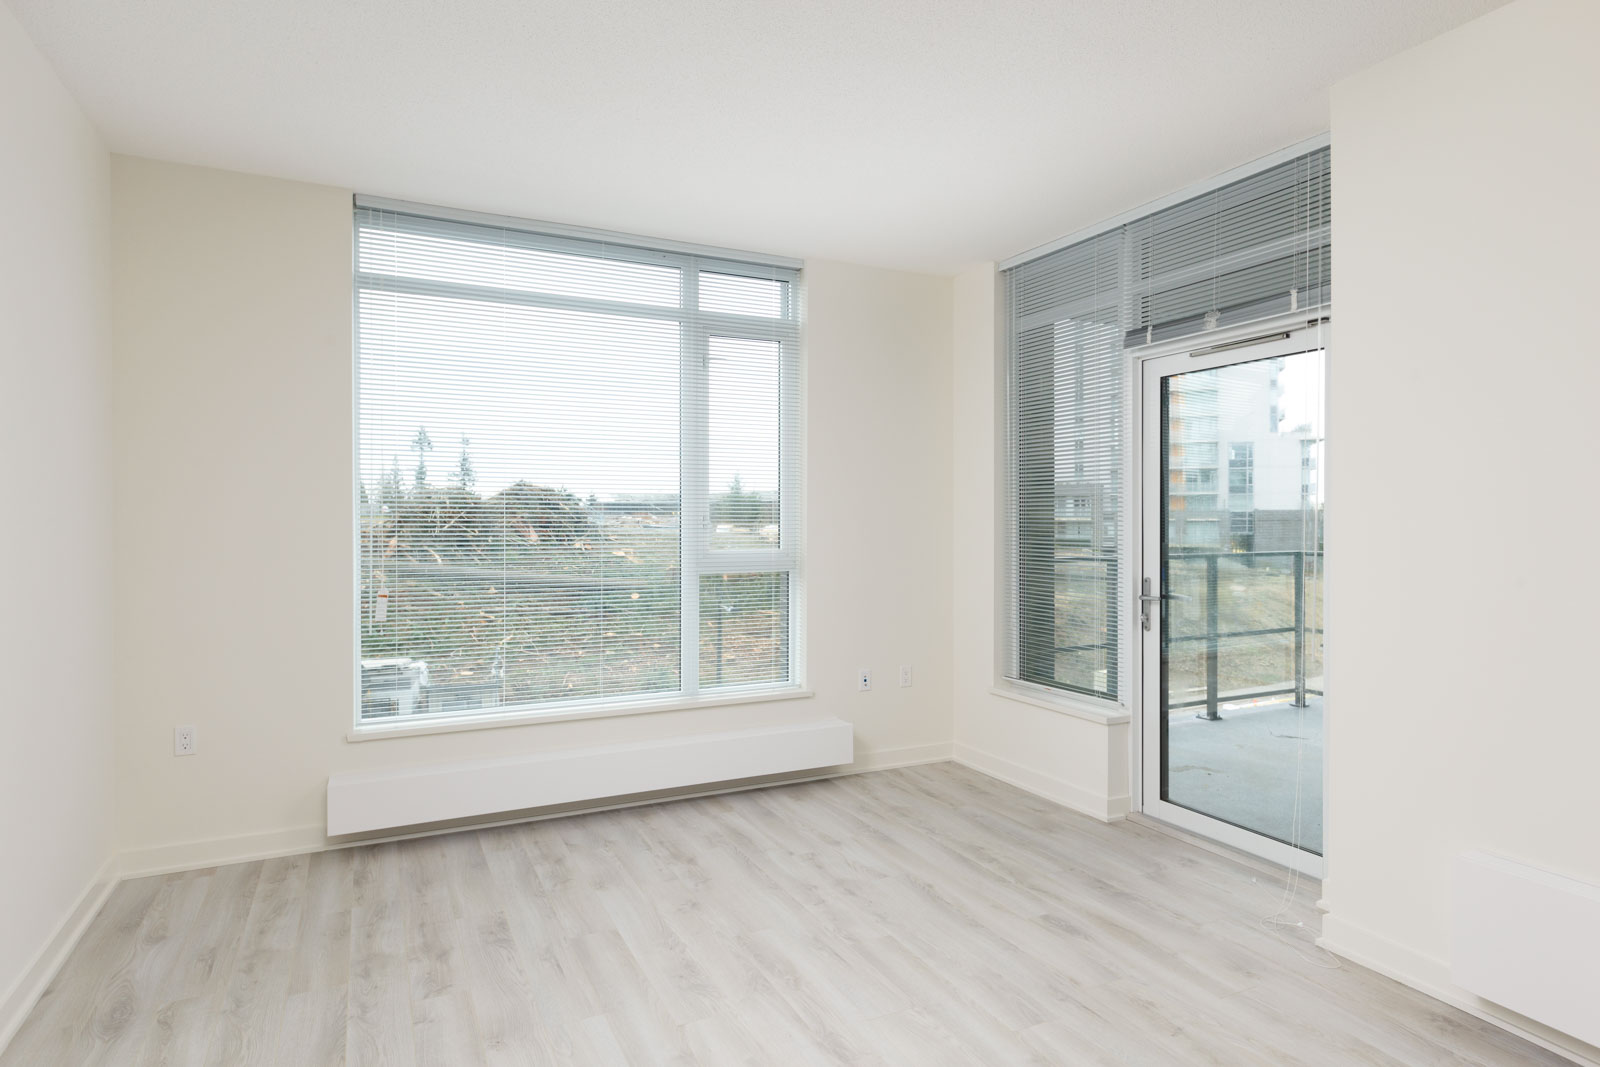 Room with view and access to private balcony at Burnaby Mountain condo.